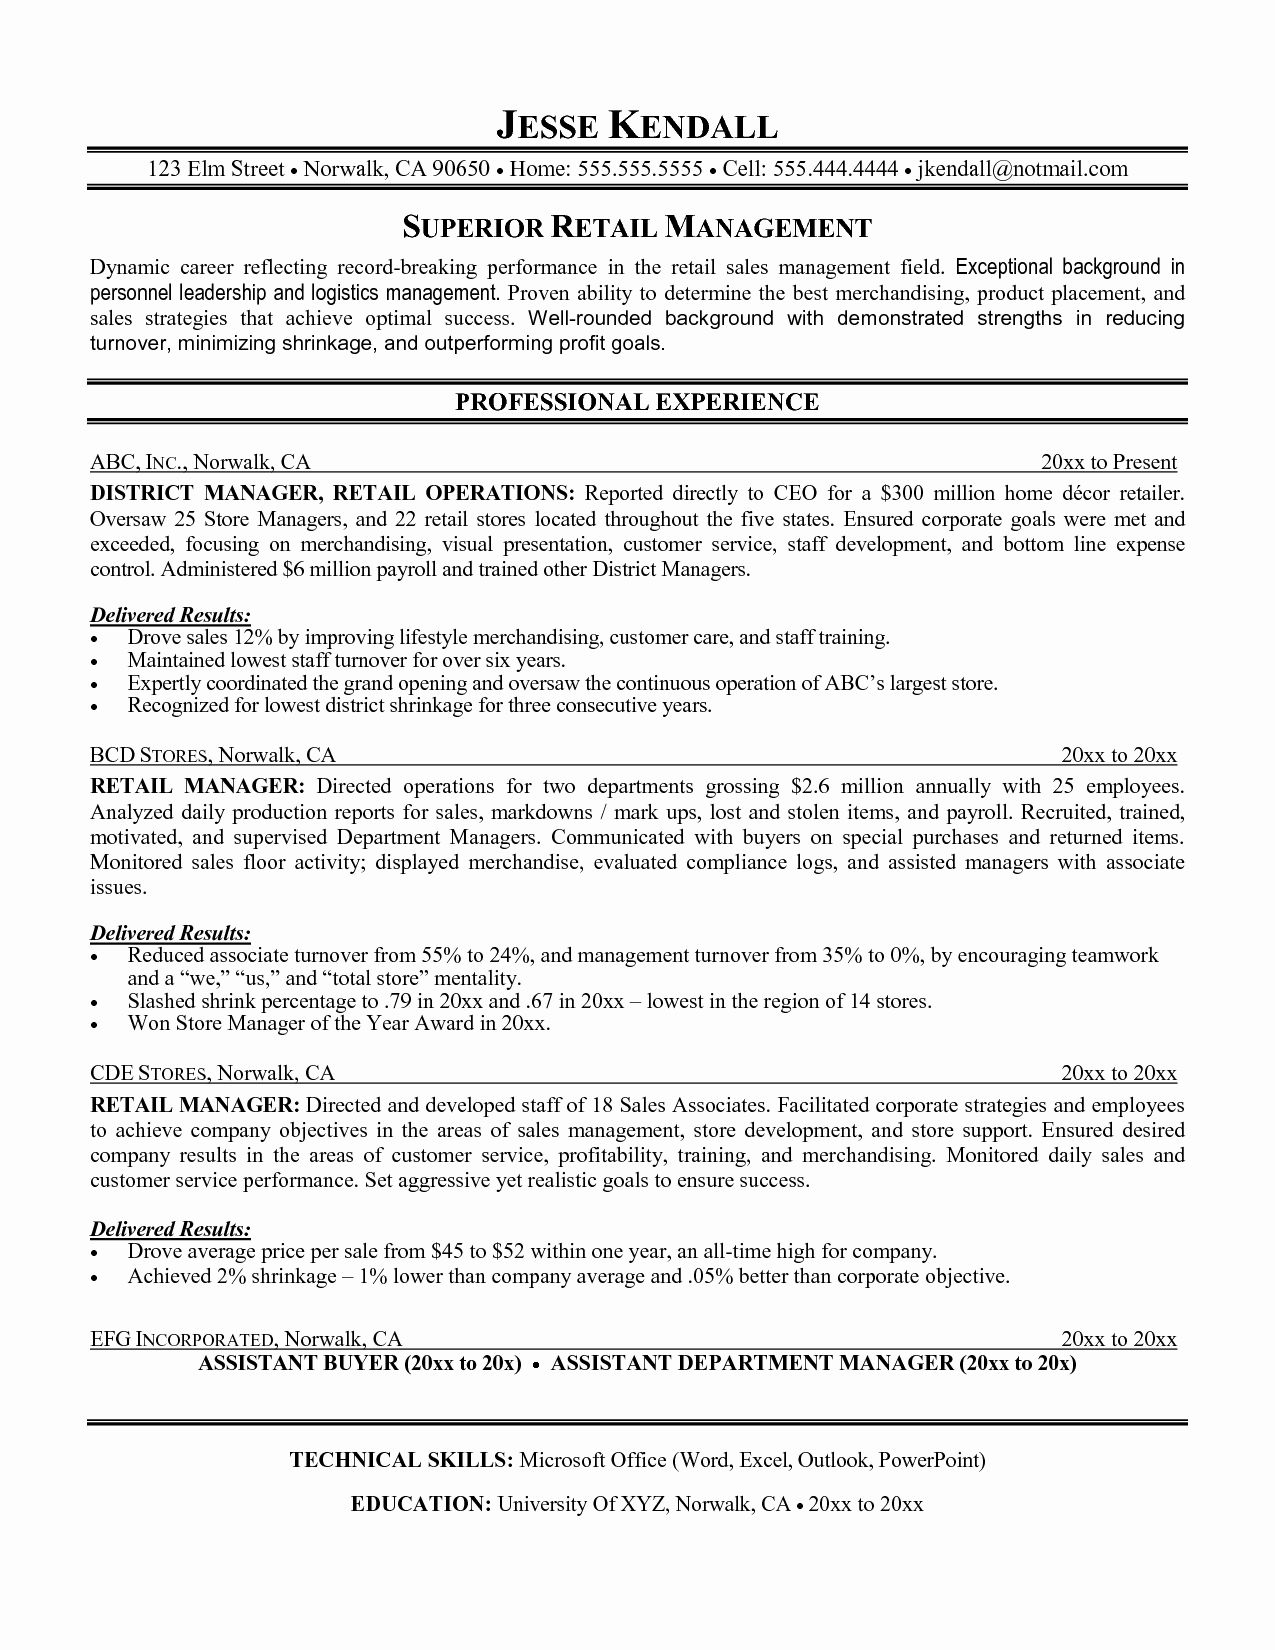 New Retail Management Resume Examples Retail Resume Objective Retail Resume Retail Resume Examples Resume Objective